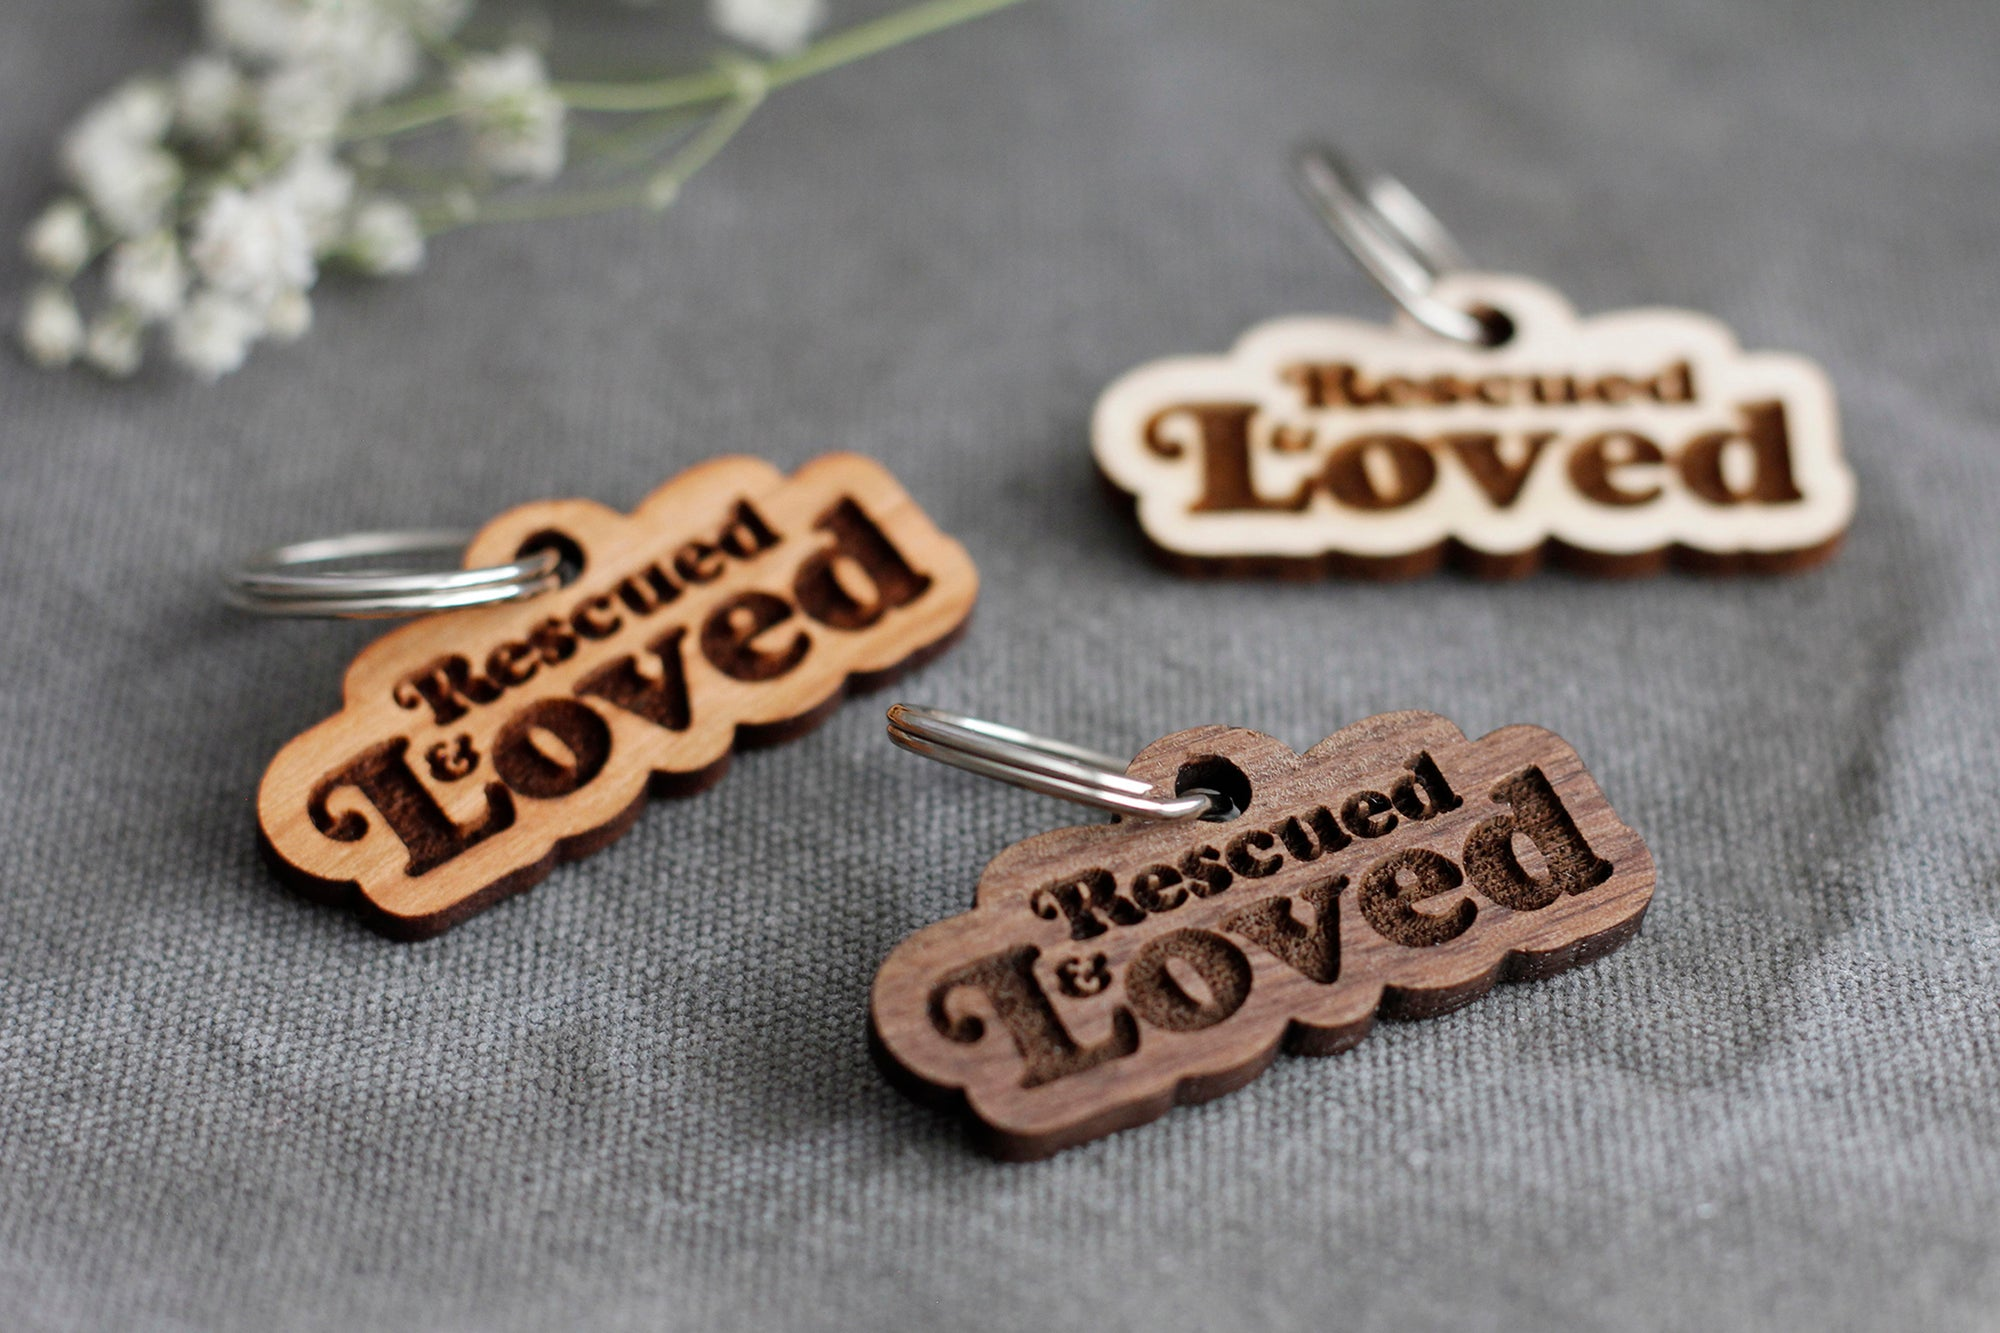 Rescued & Loved Badge Style Wooden Pet Tag